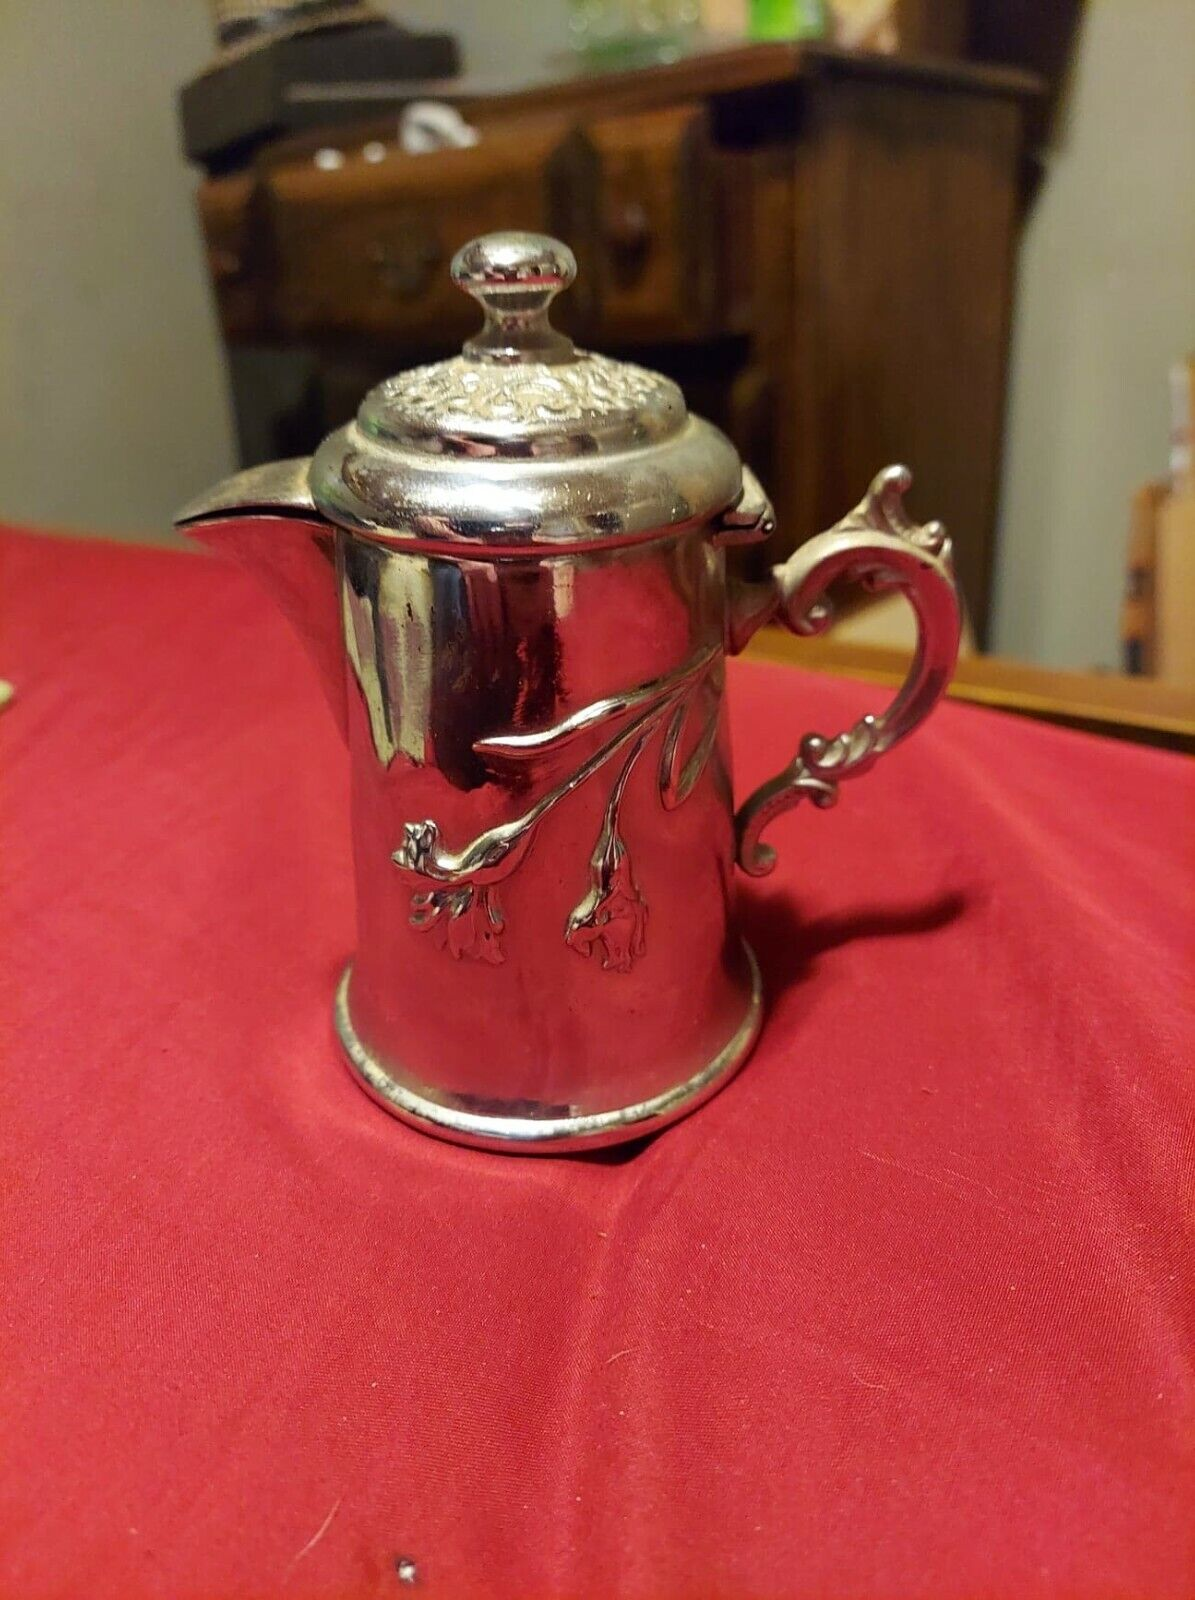 Adelphia Silver Co. Quadruple Plate Tea Pot Circa 1900 - $20.00